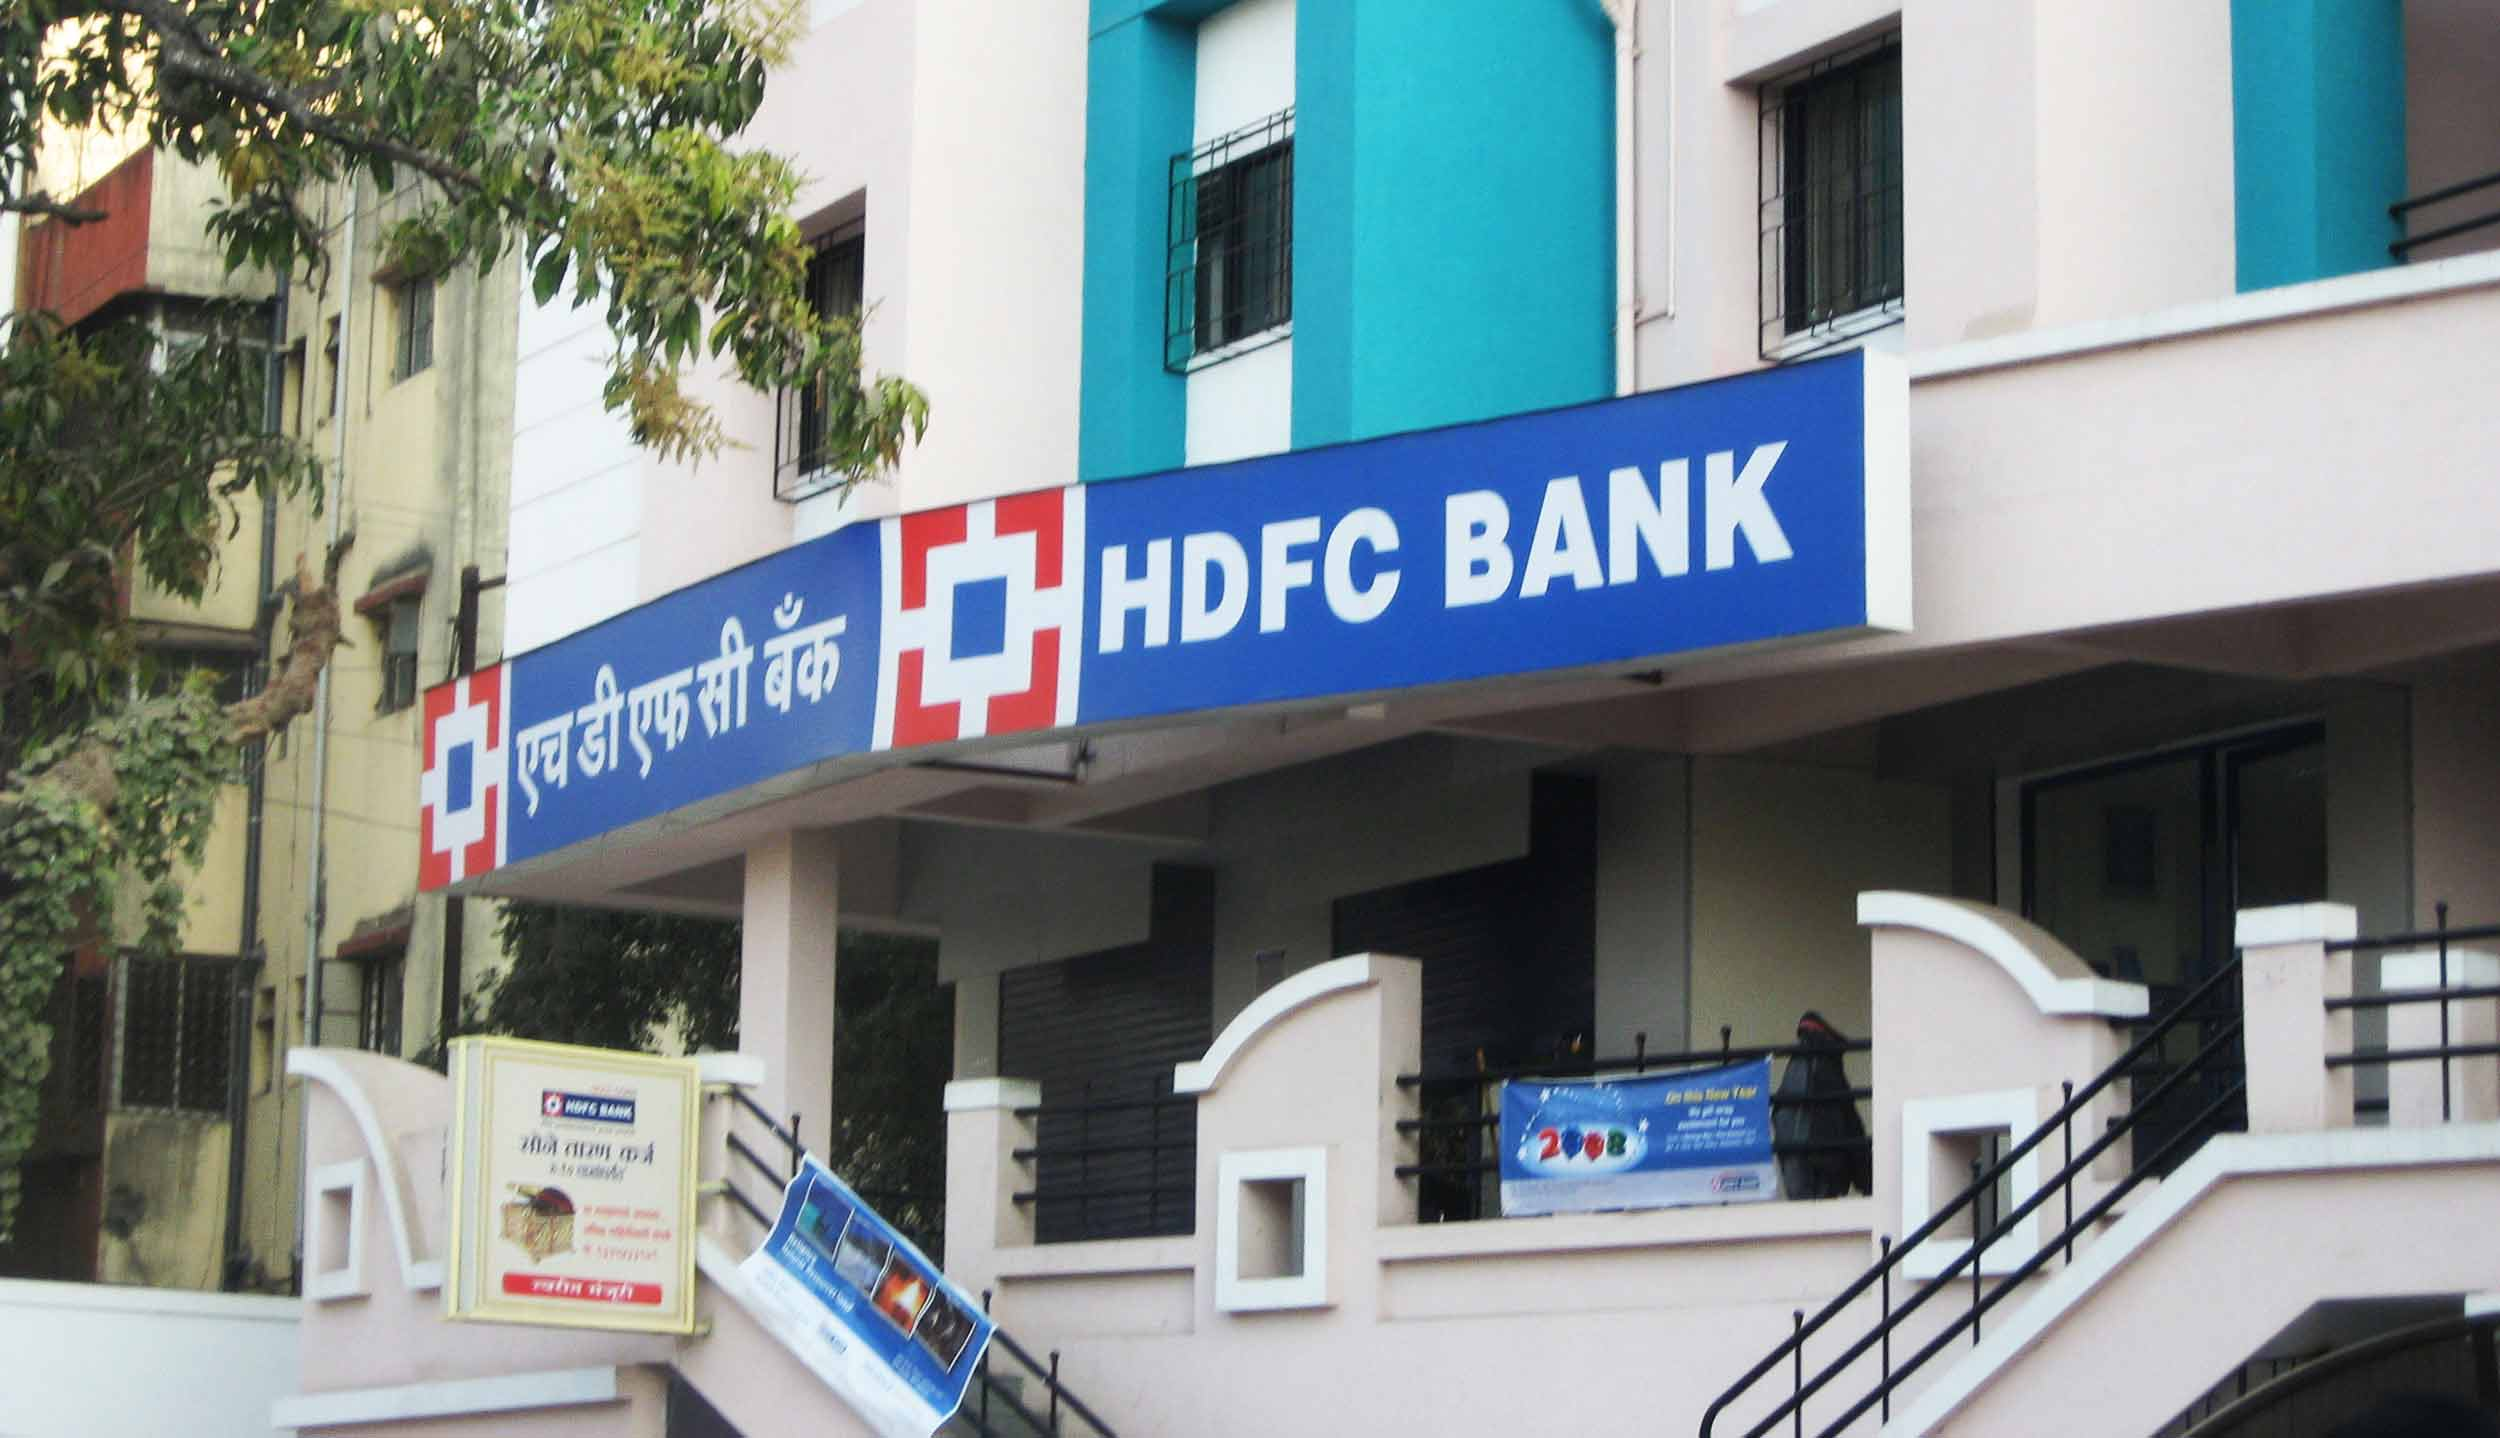 Hdfc Personal Banking Services